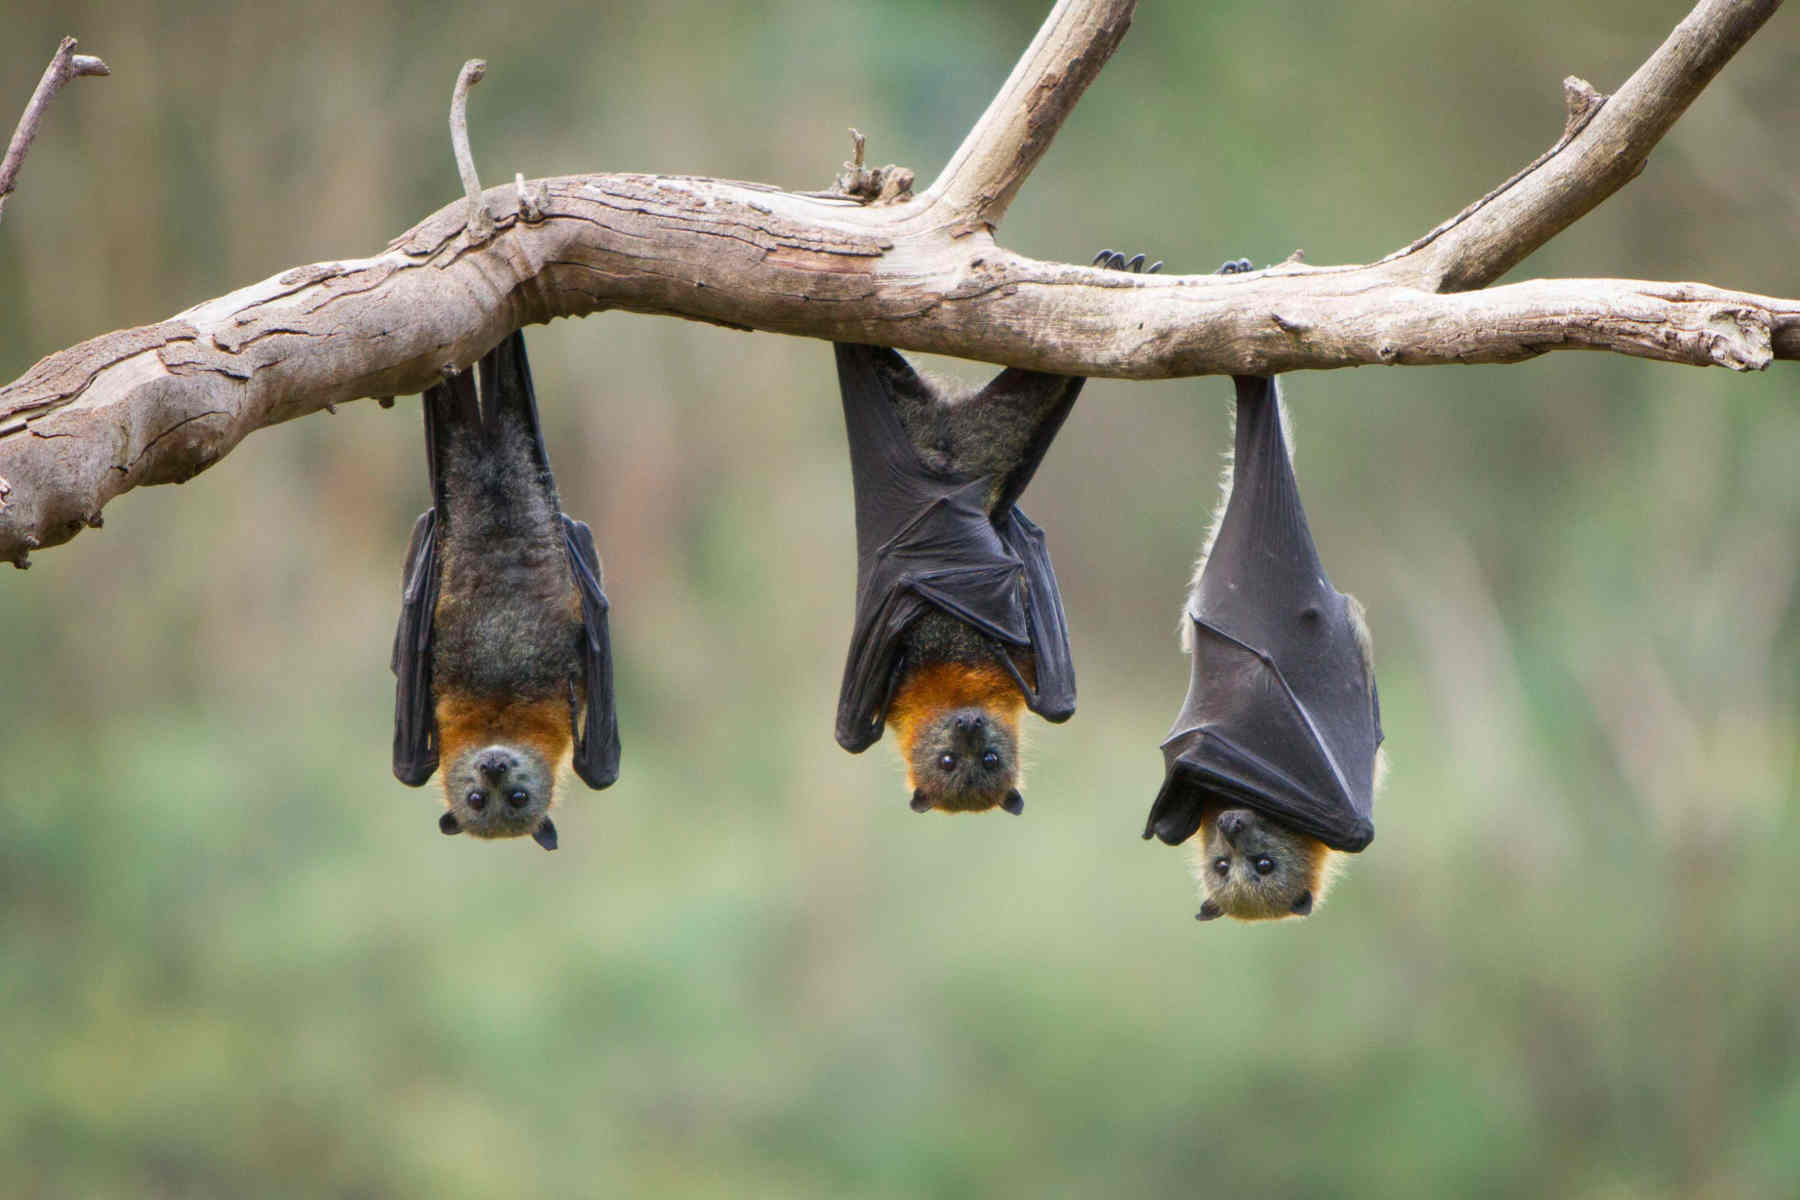 Bats Wallpapers High Quality | Download Free